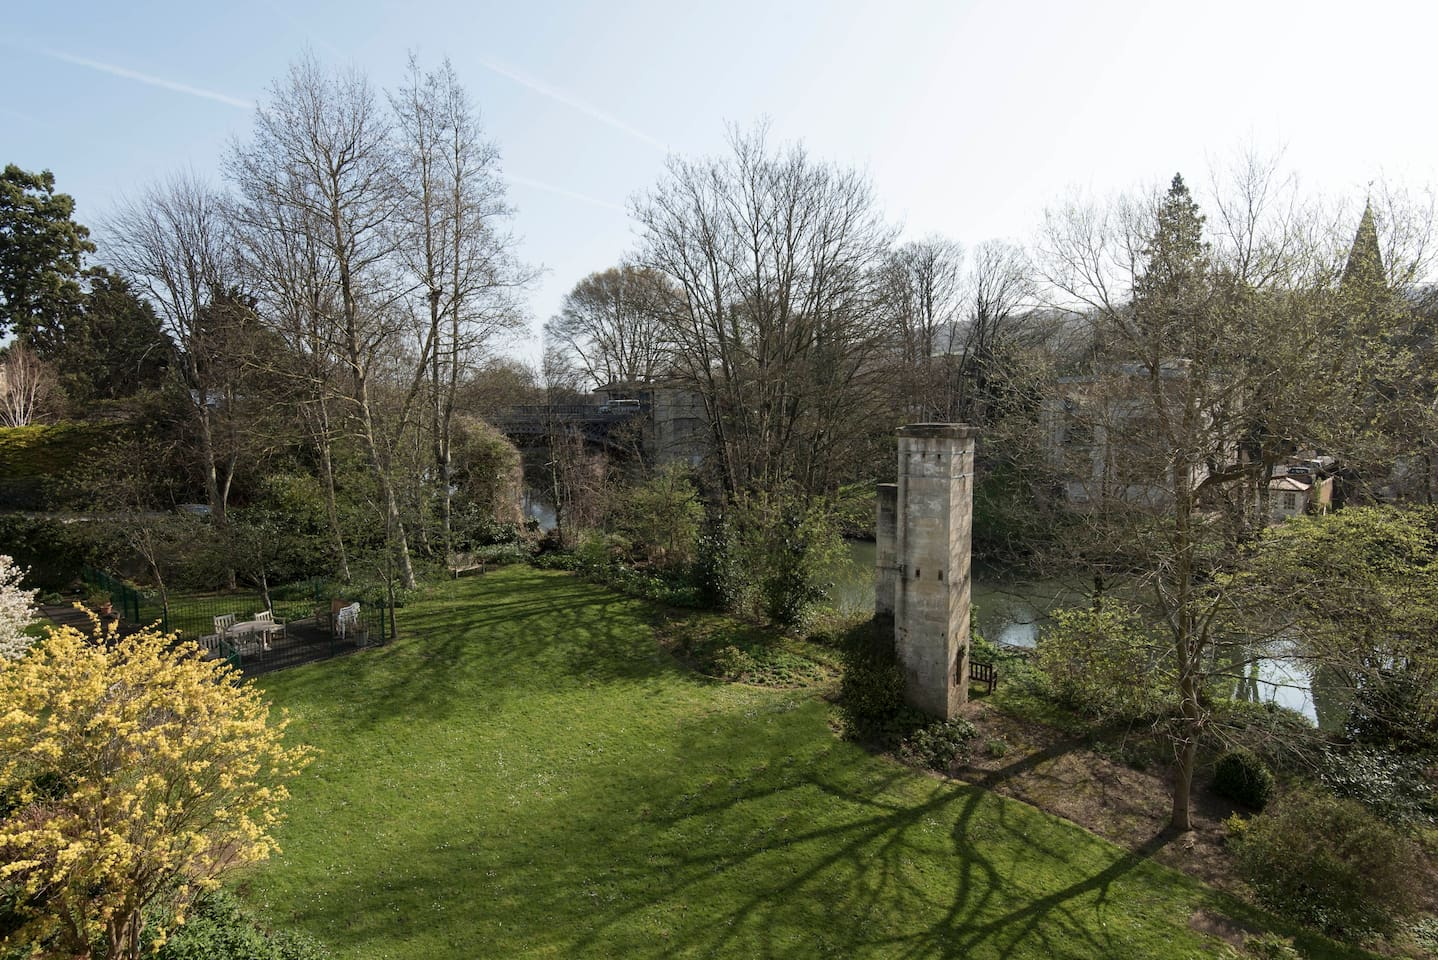 Enjoy the use of this splendid communal garden and views from the windows.